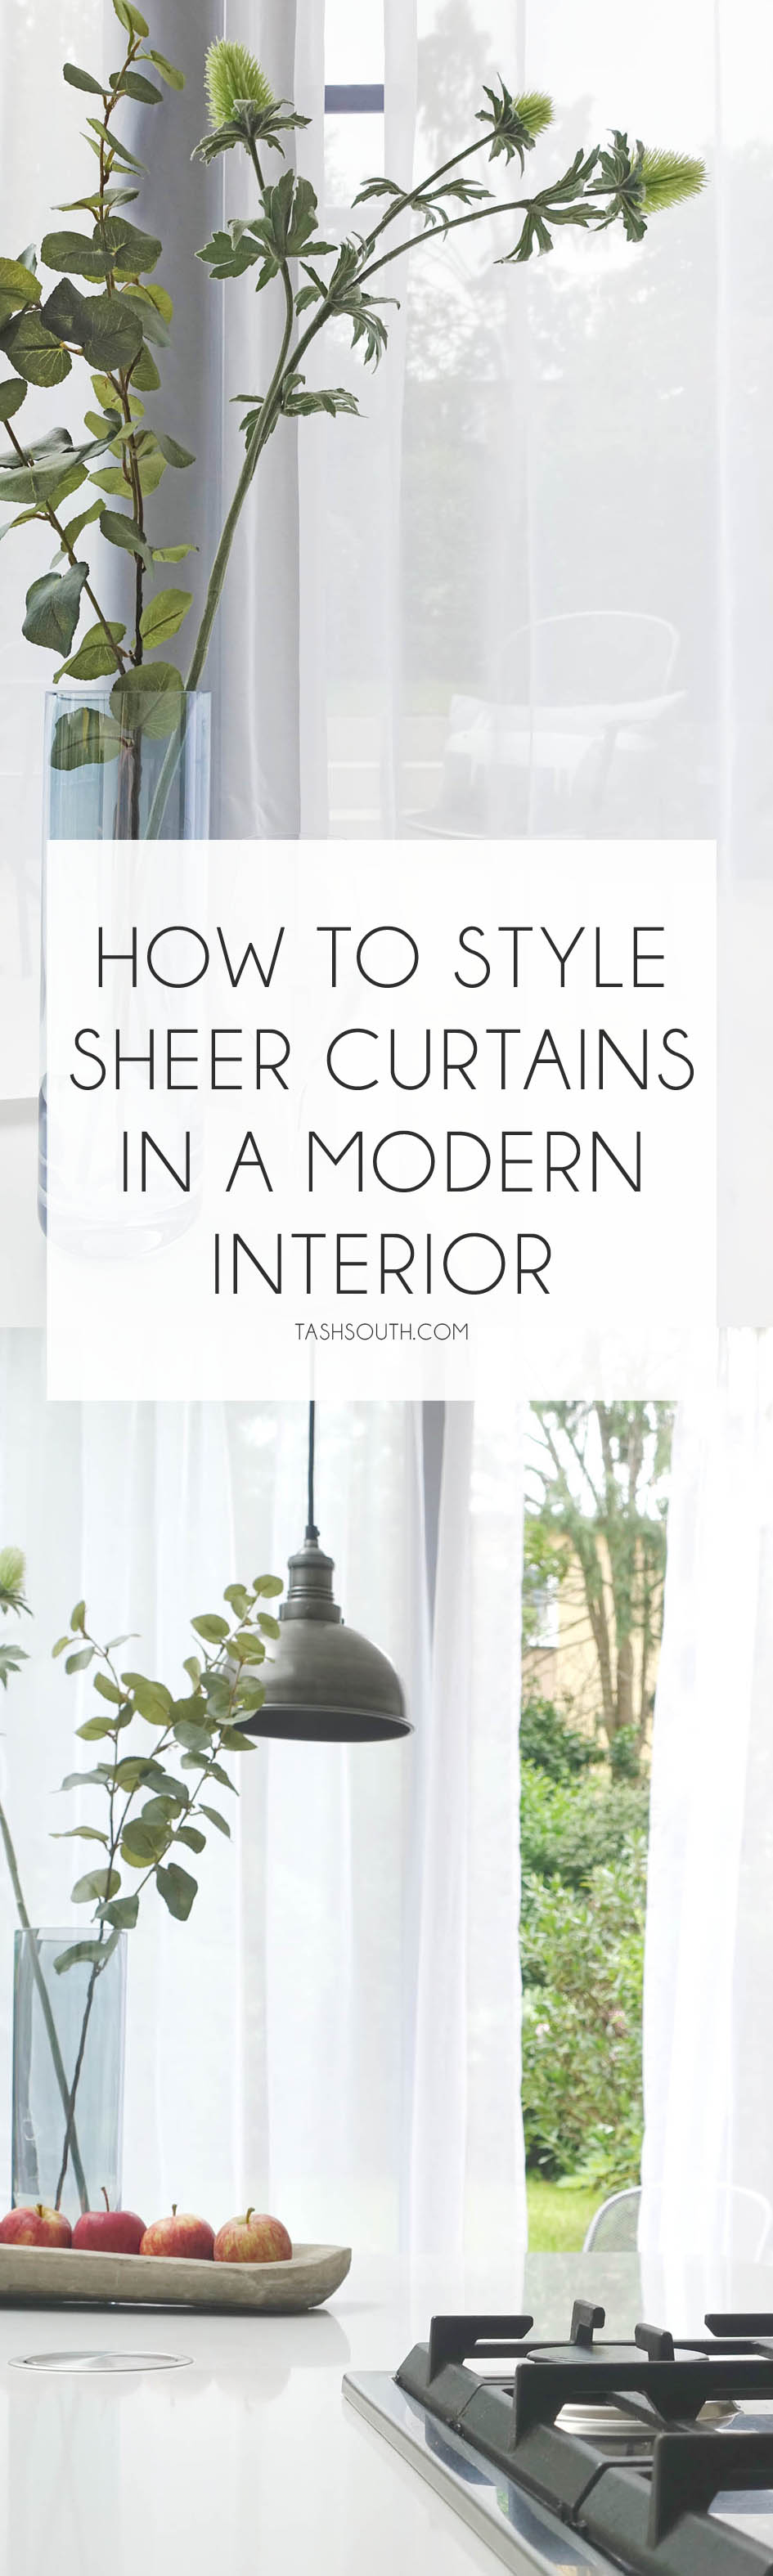 How to style sheer net curtains in a modern interior